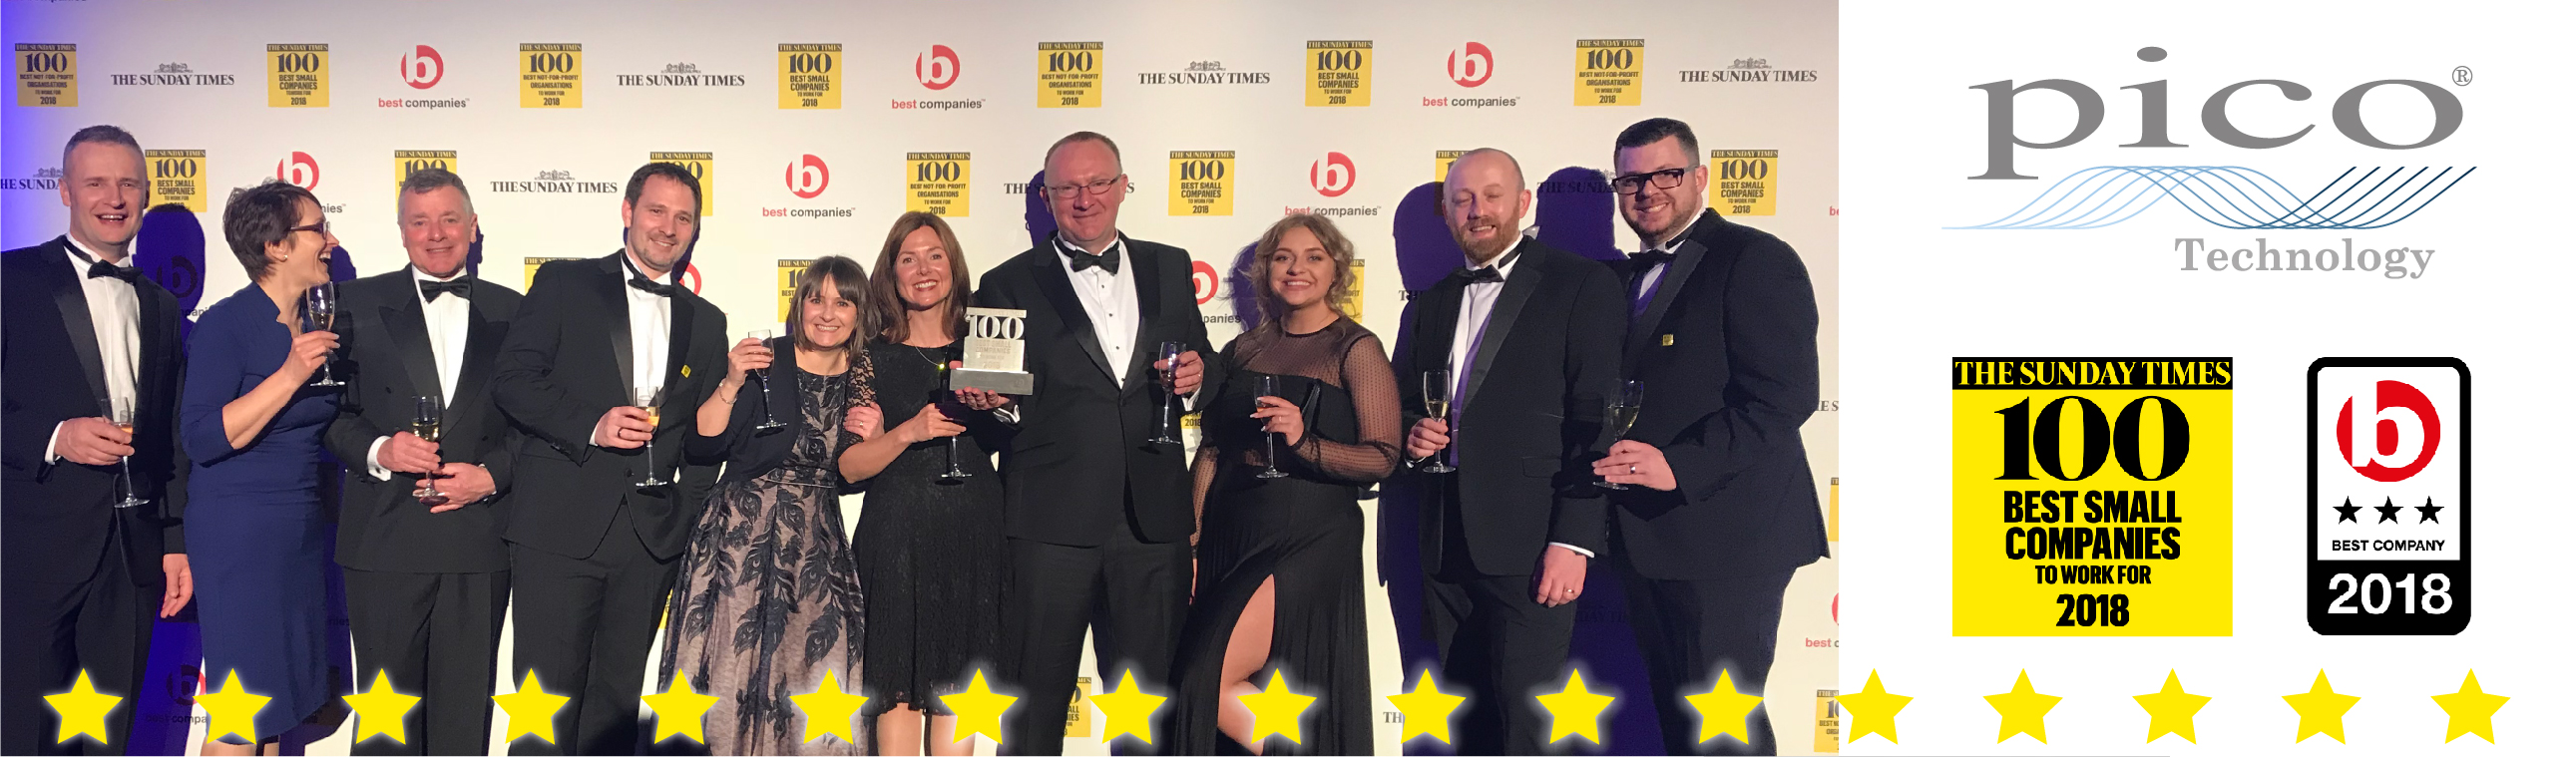 Sunday Times 100 Best Companies to Work For 2018